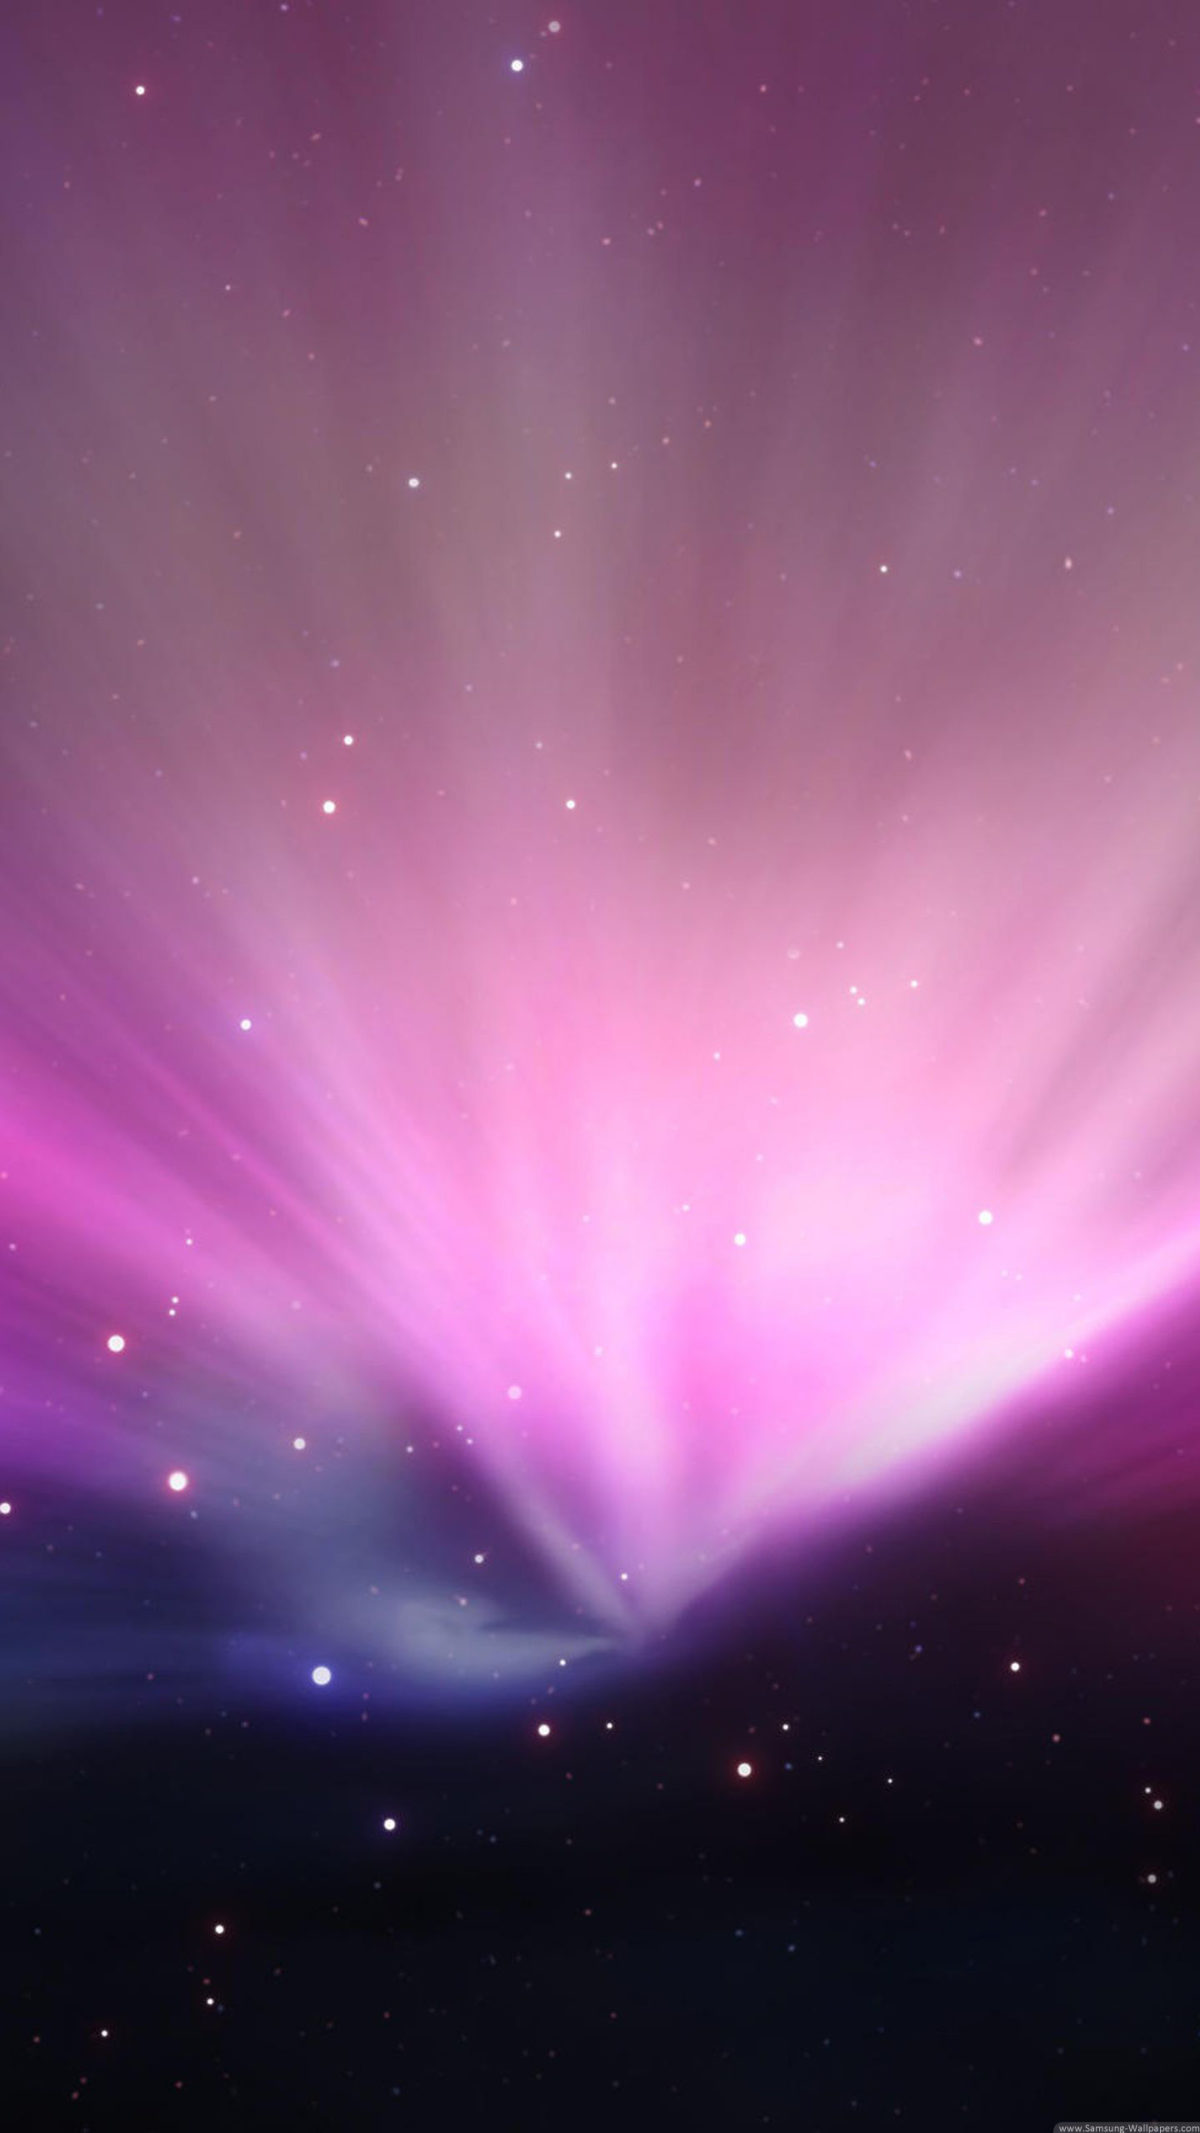 Pink Lights Aurora Lock Screen Wallpaper For Samsung Galaxy Hd Samsung Wallpapers